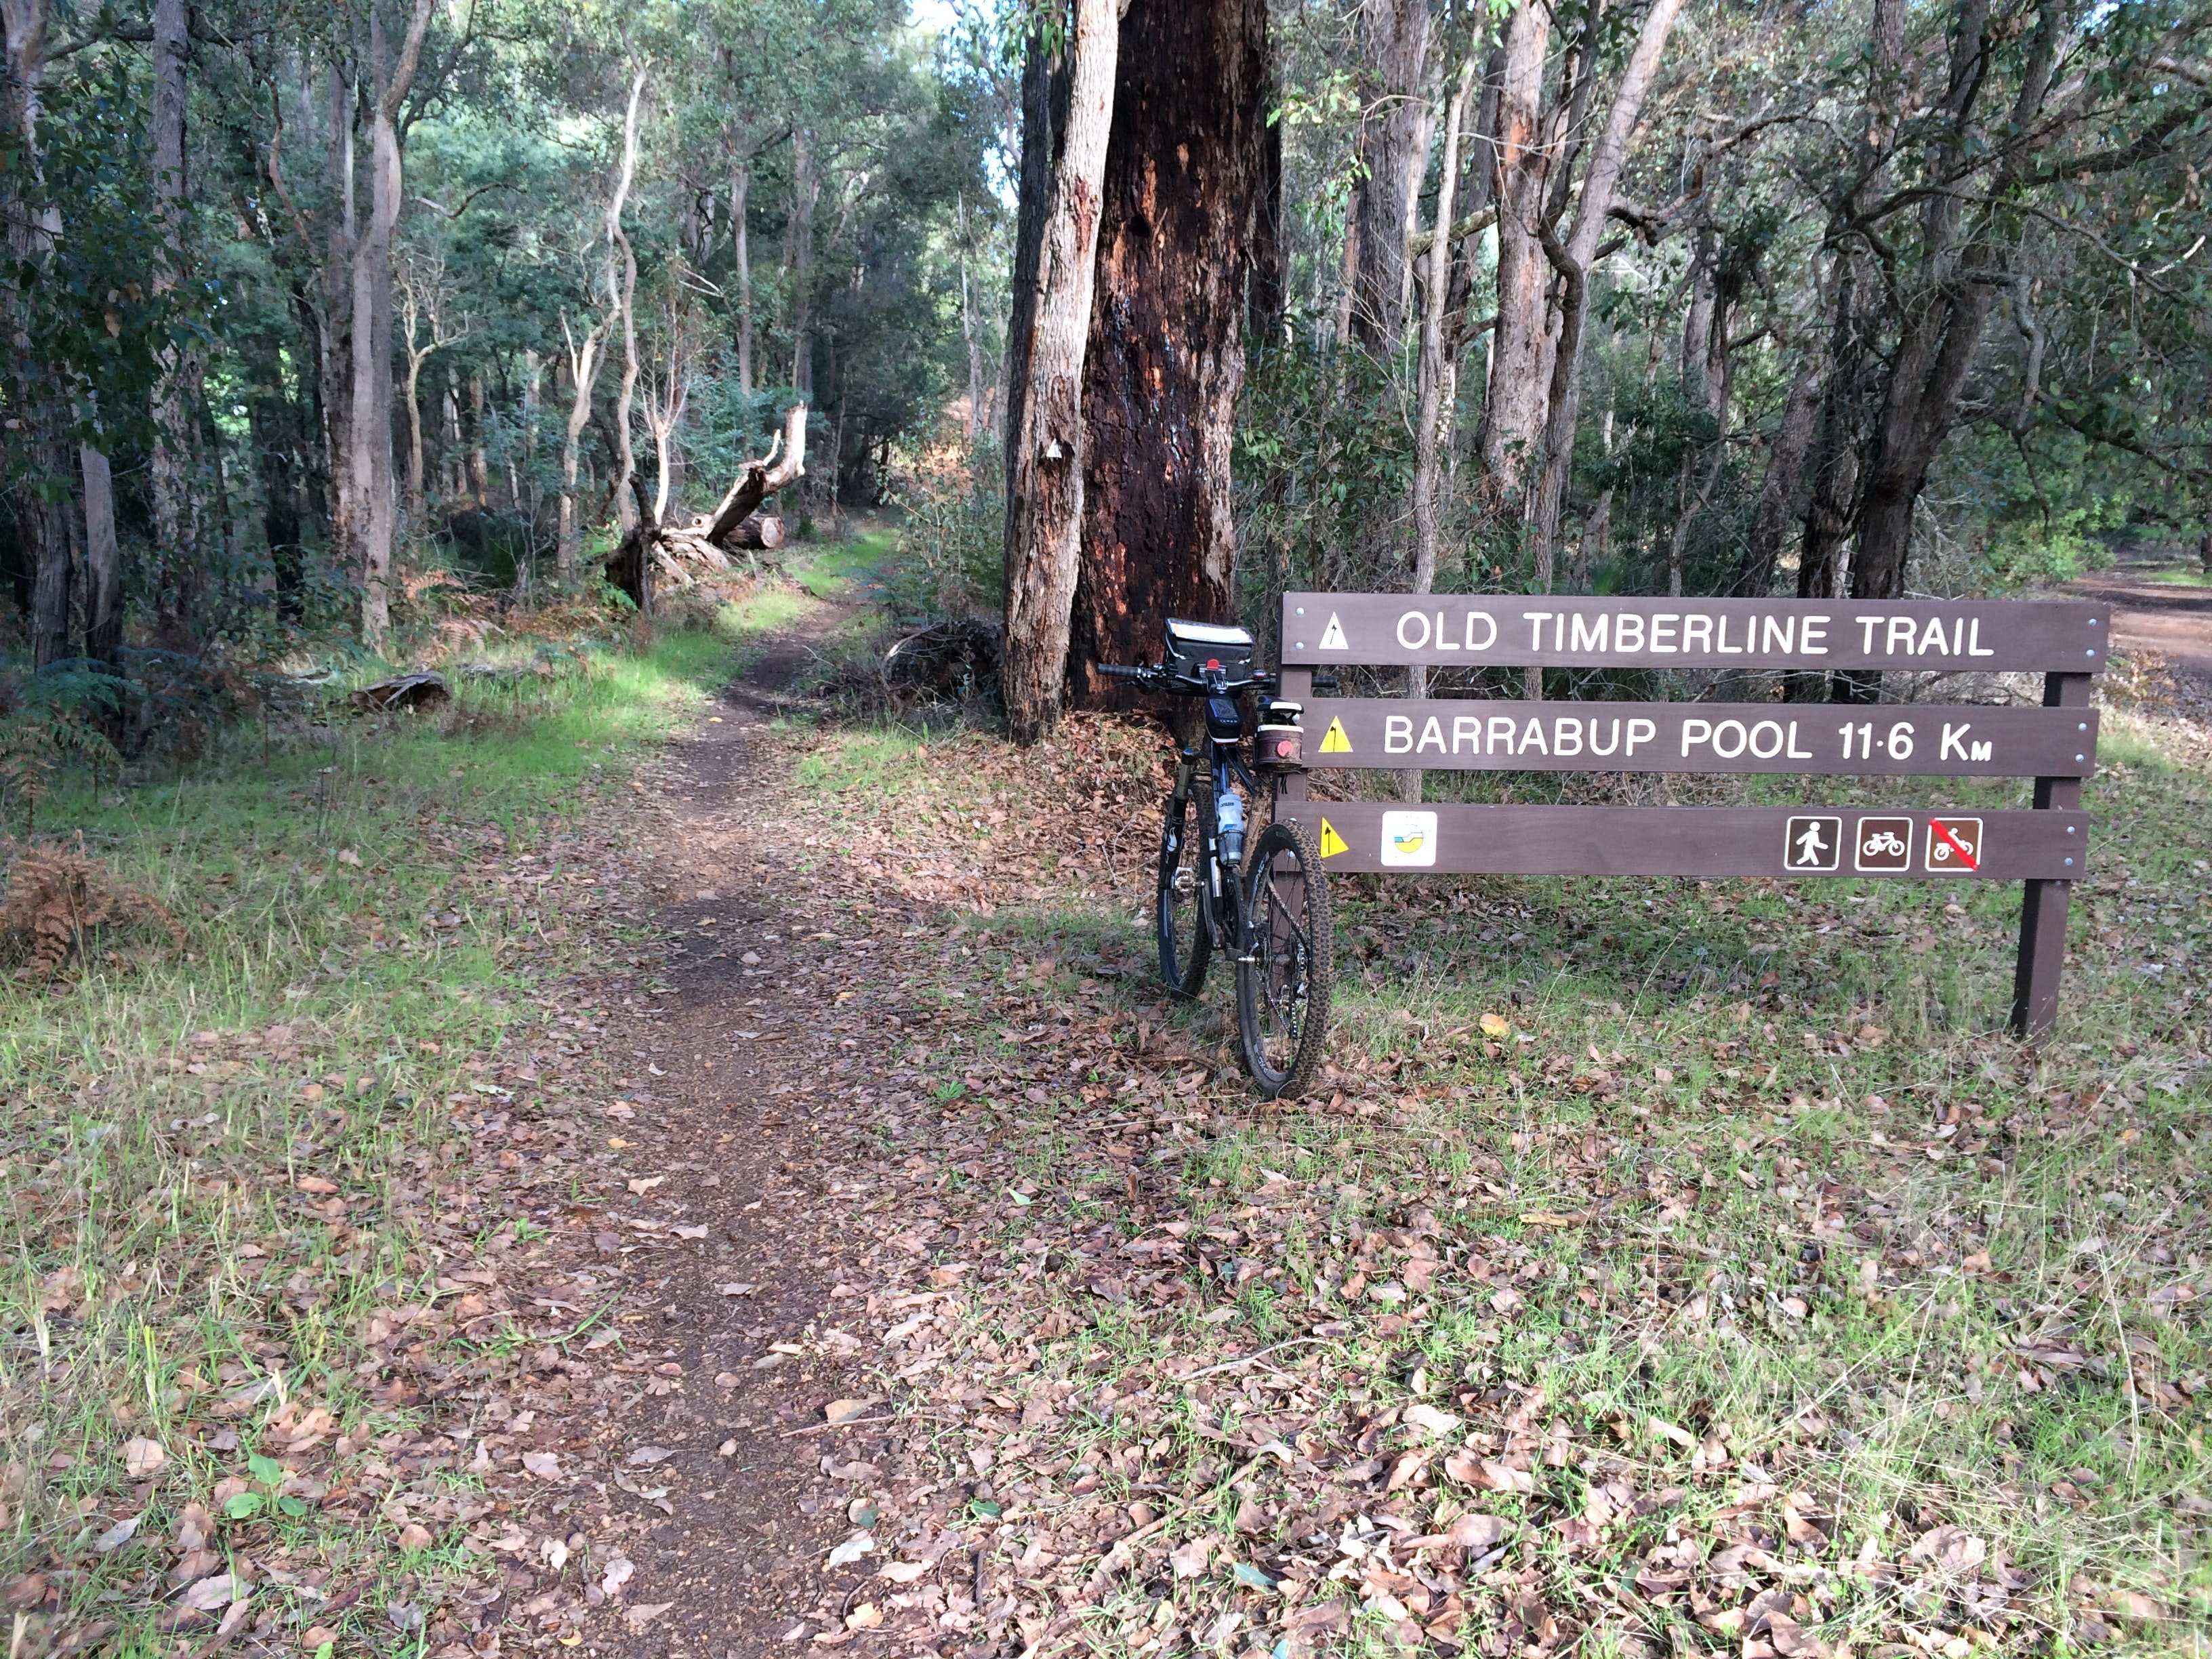 Old Timberline Trail marker near Nannup